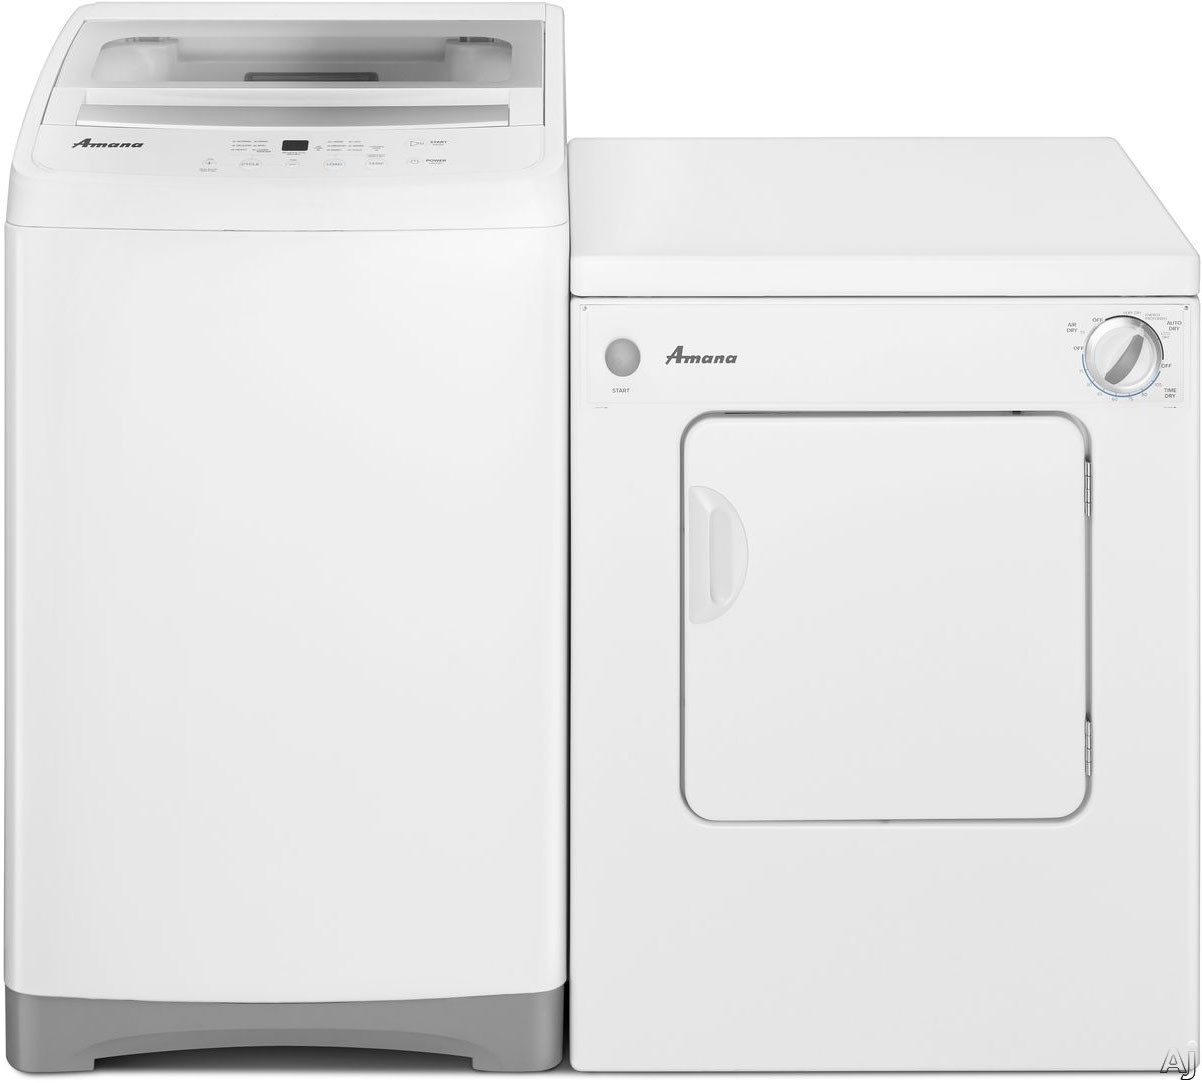 Picture of Amana AMWADREW2 Side-by-Side Washer  Dryer Set with Top Load Washer and Electric Dryer in White